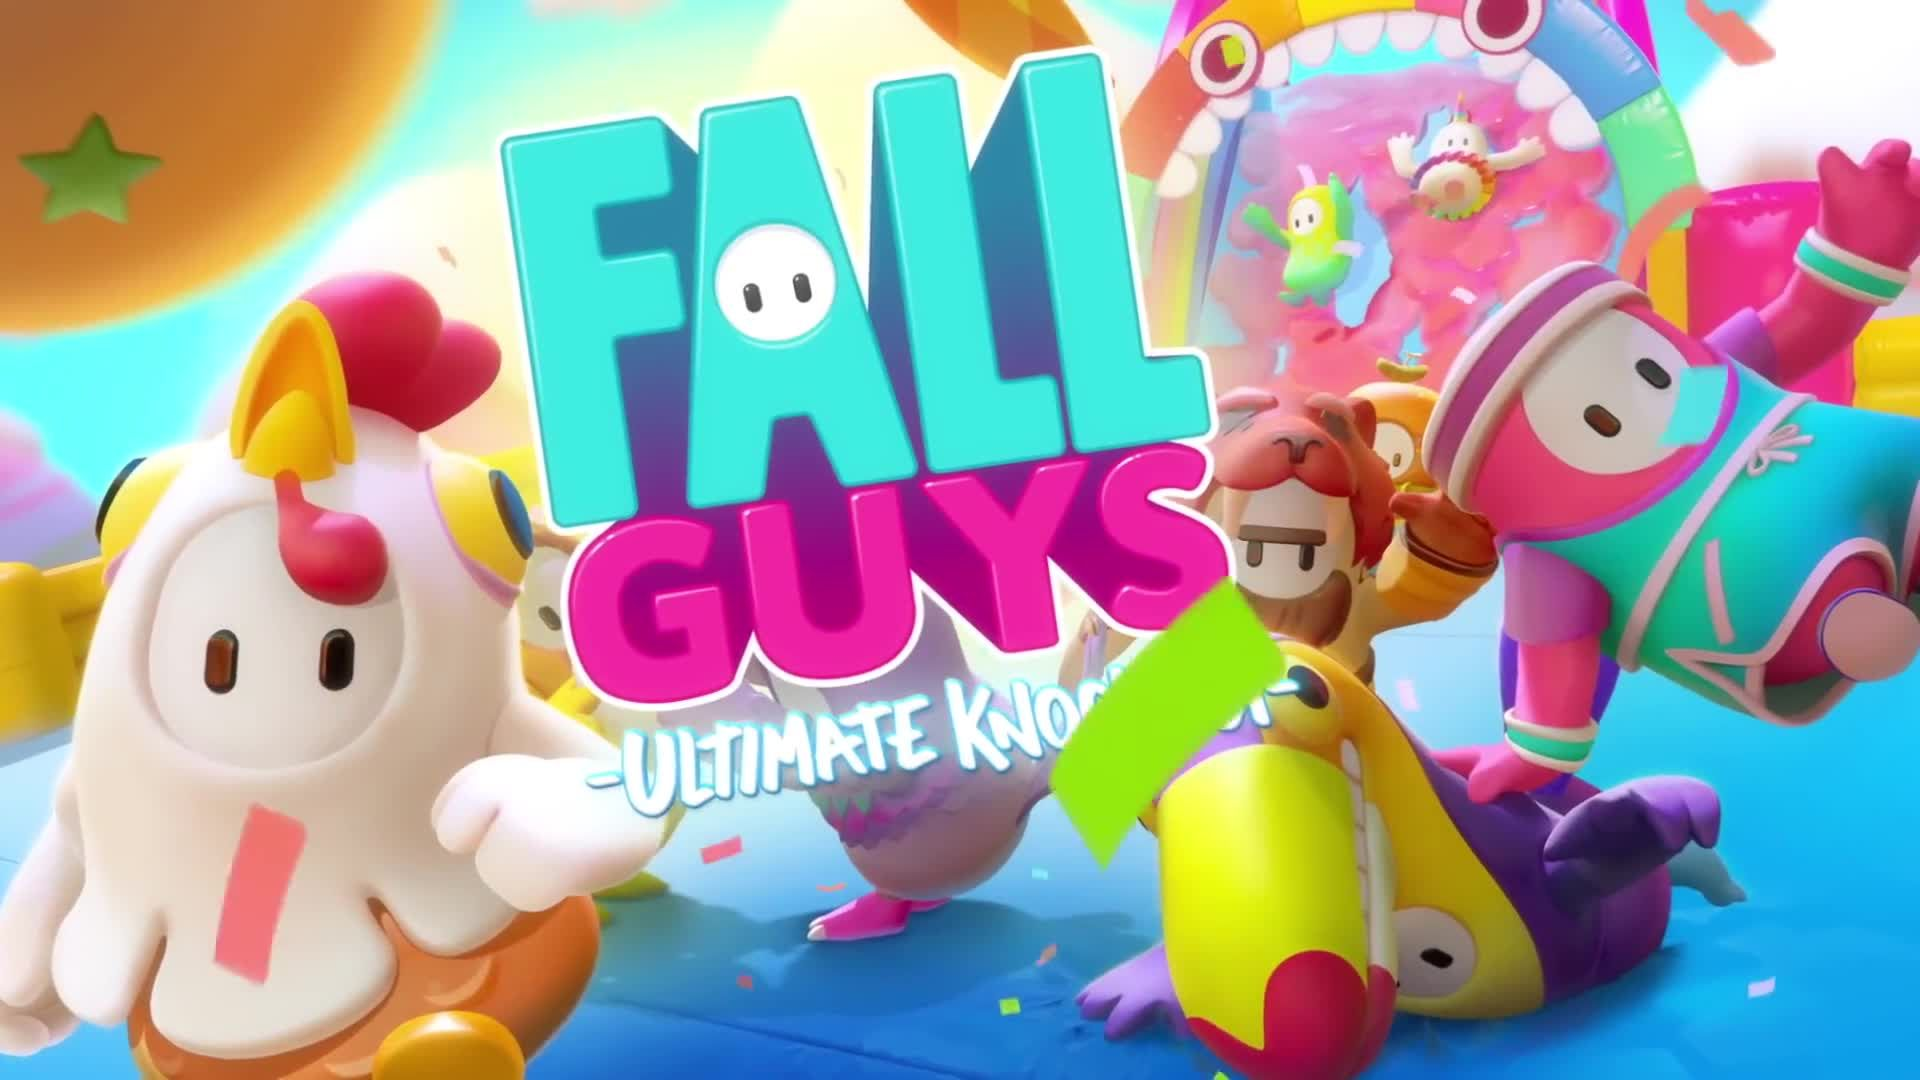 Fall-Guys-Ultimate-Knockout-Promo